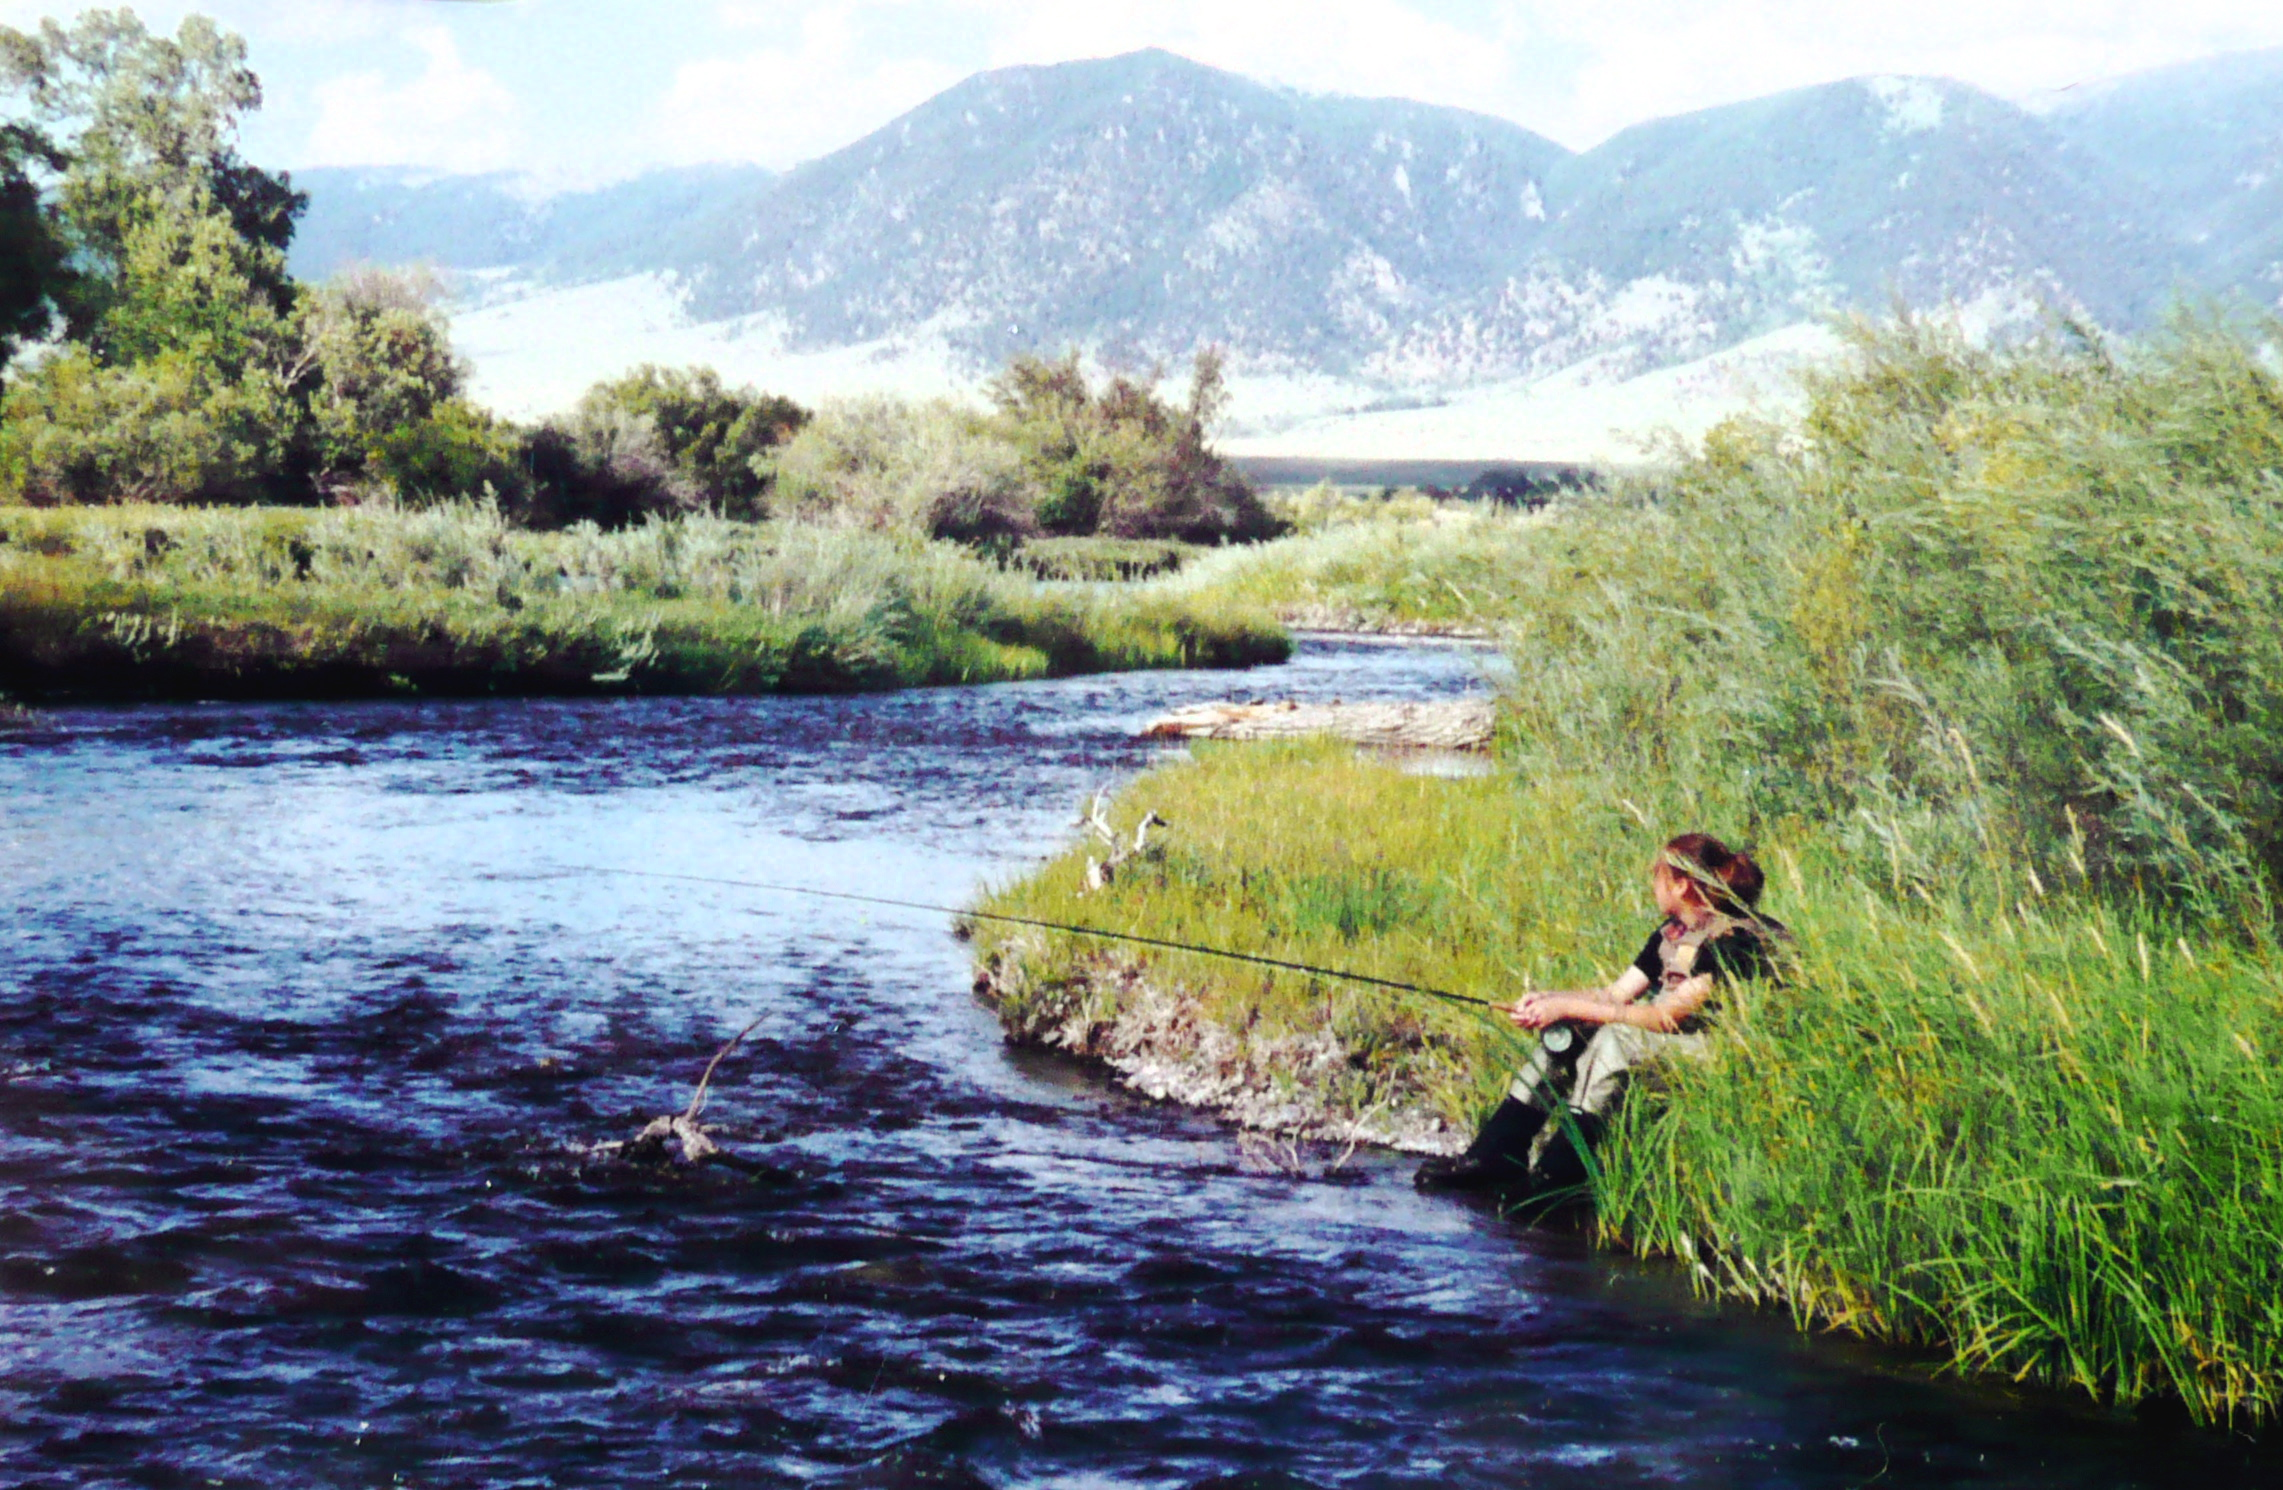 Madison river nymph fly fishing planettrout for Madison river fly fishing